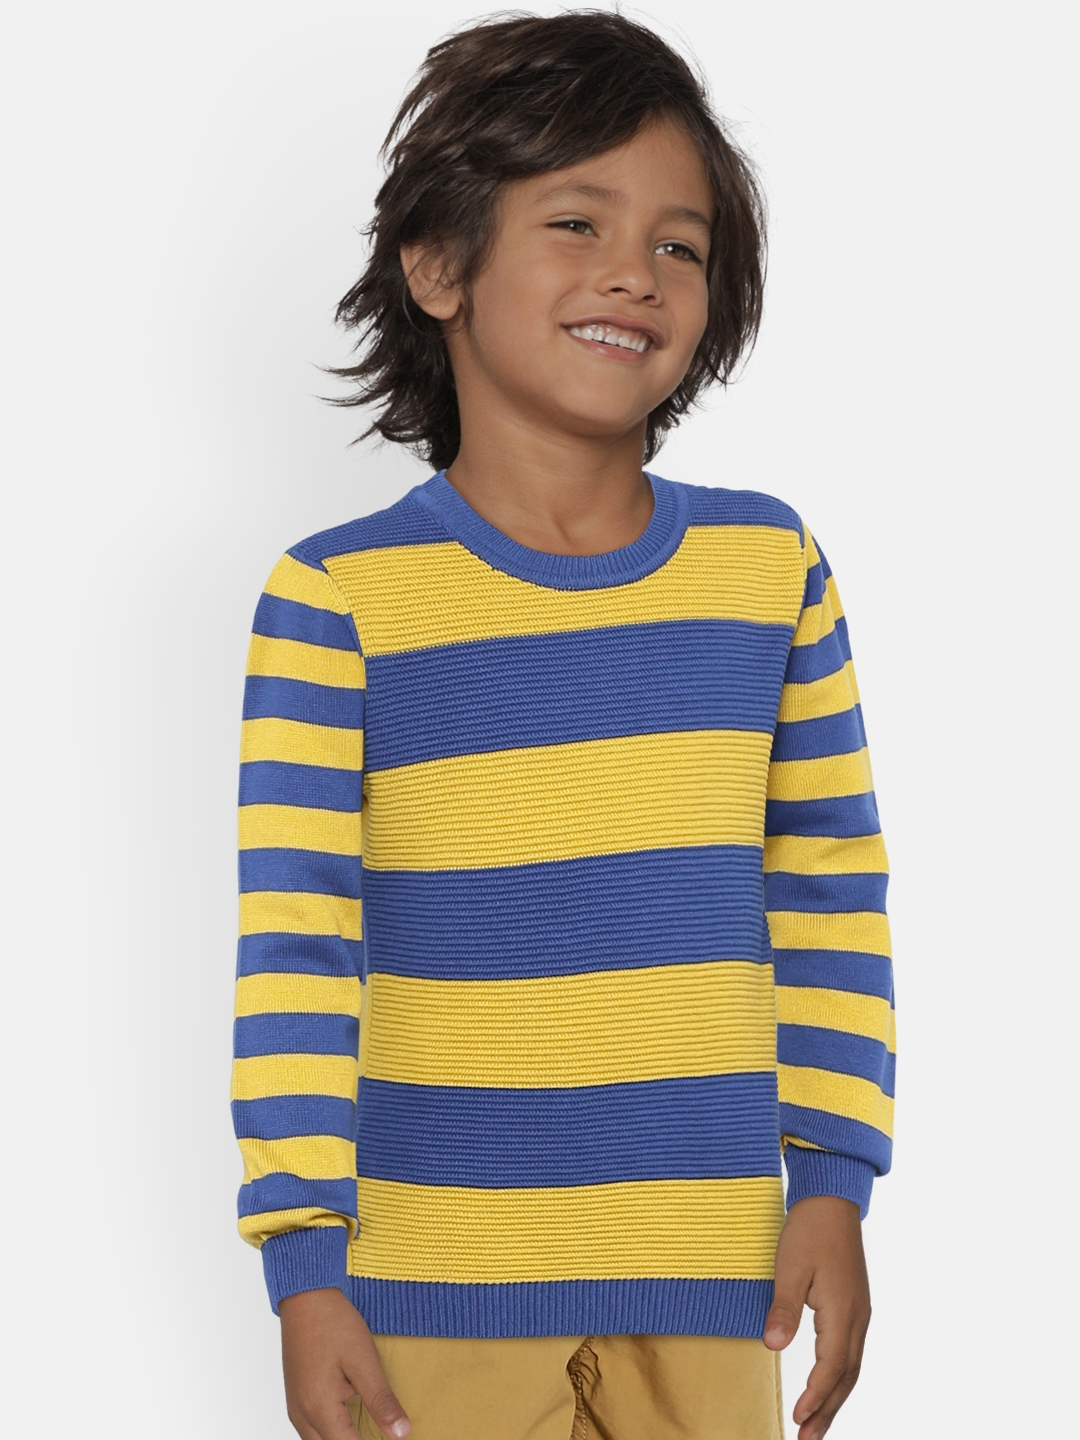 Buy United Colors Of Benetton Boys Blue Yellow Striped Pullover